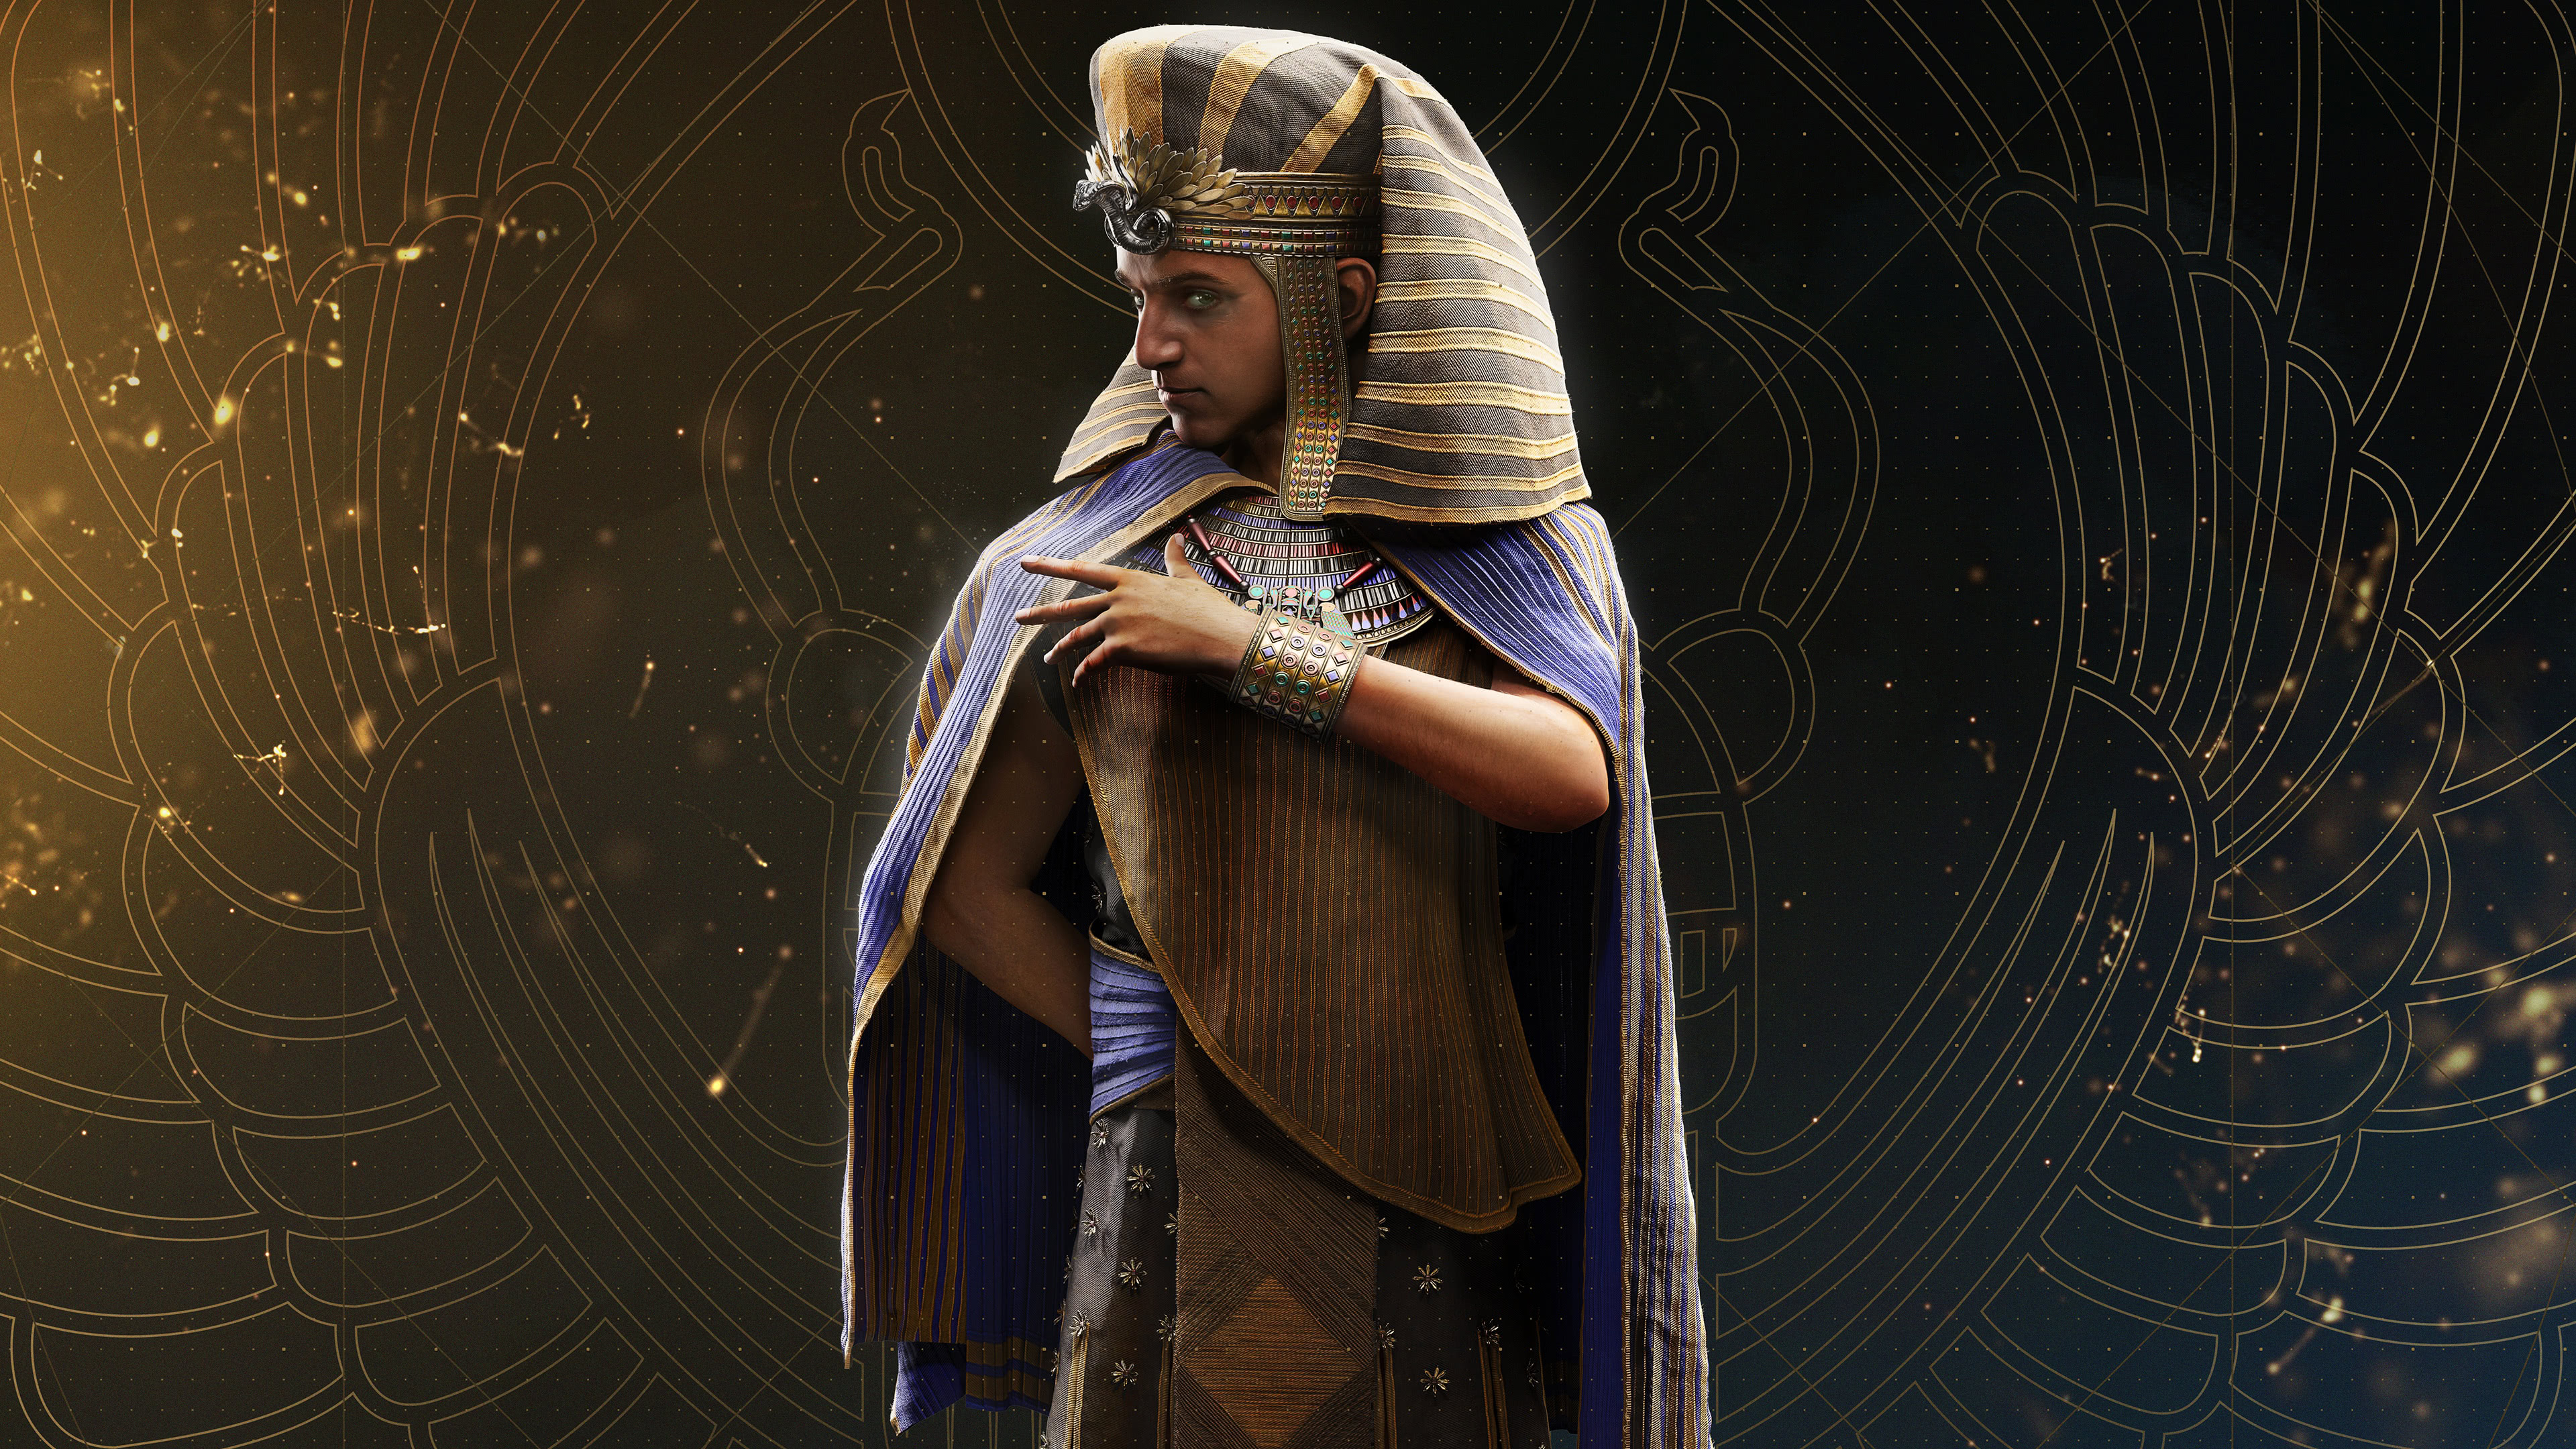 assassins creed origins egyptien uhd 4k wallpaper